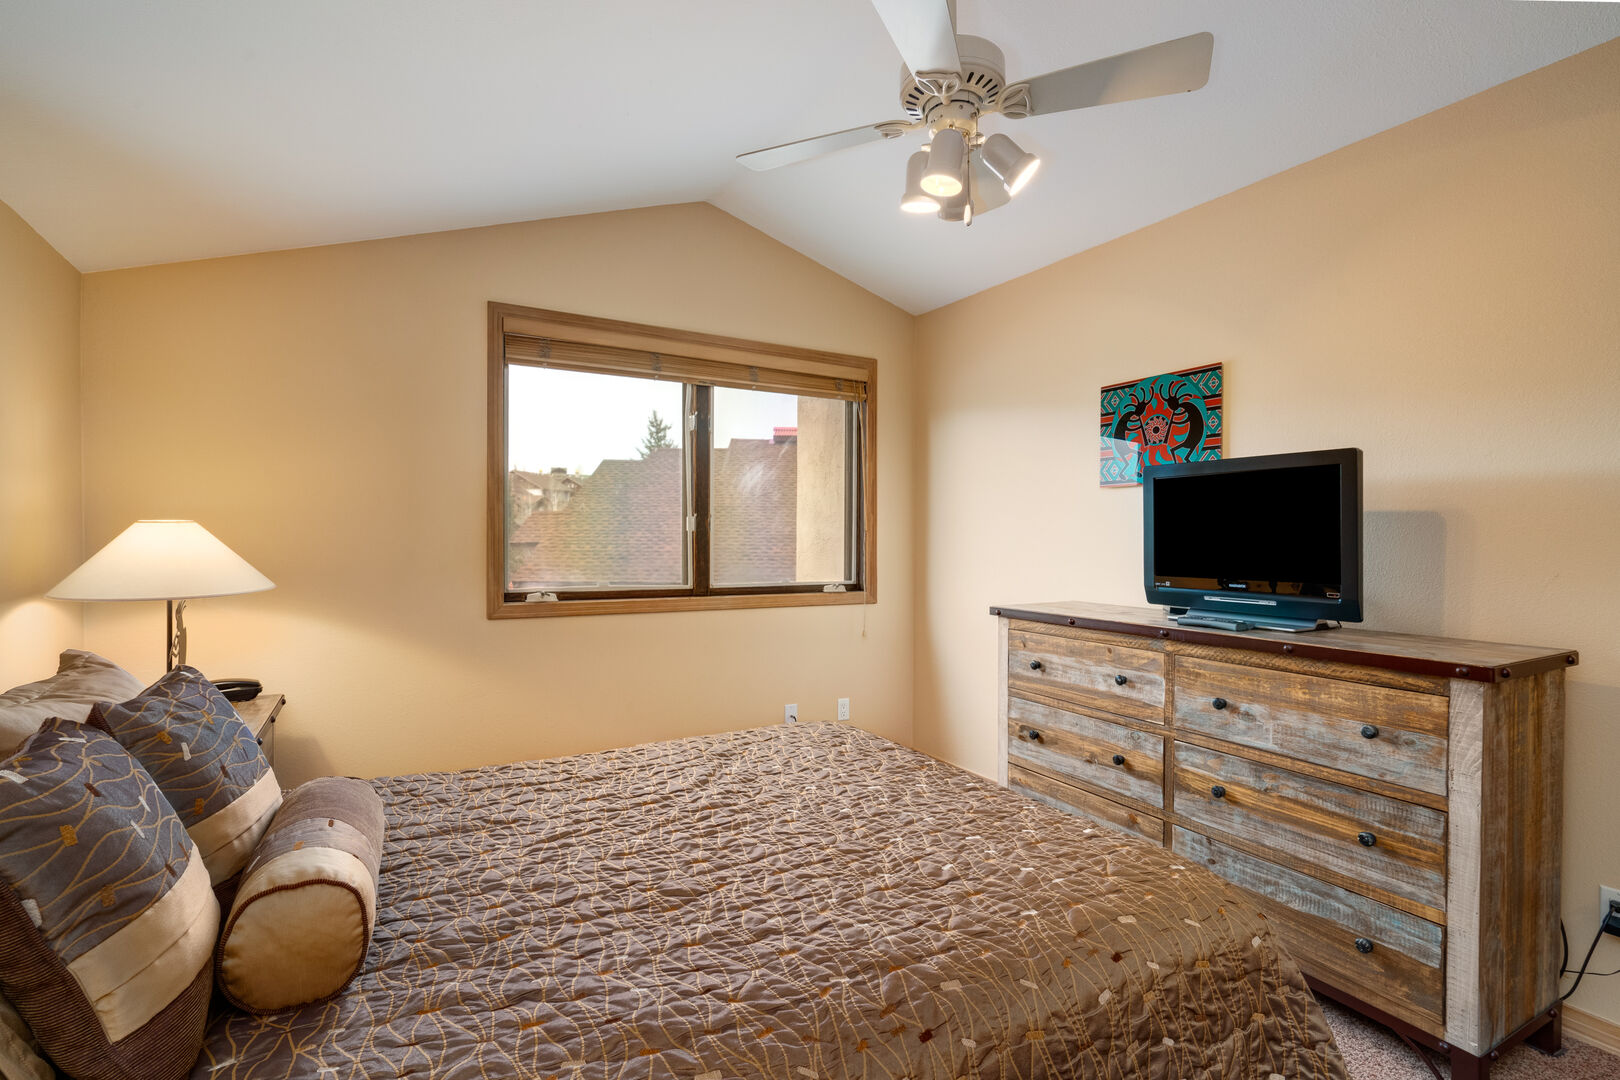 New furniture throughout the queen bedroom.